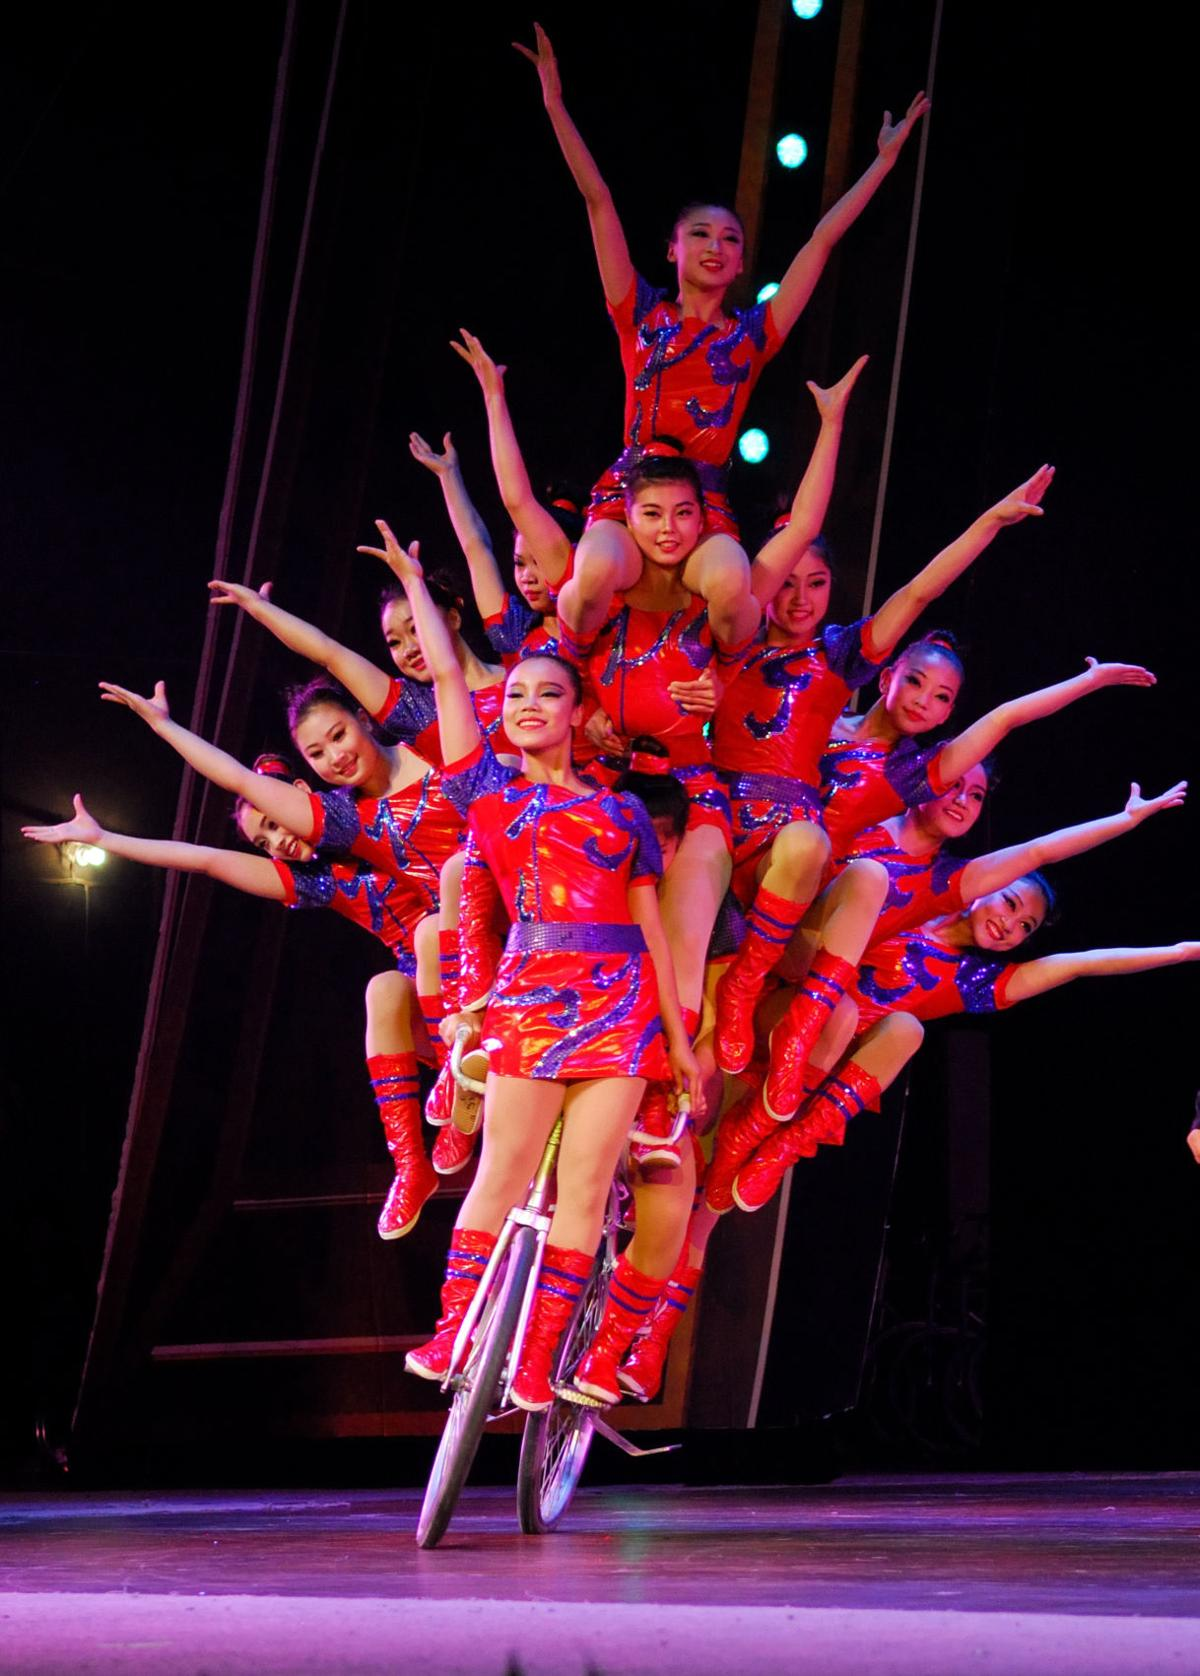 Elite circus performers from the People's Republic of China features traditional and contemporary Chinese circus acts